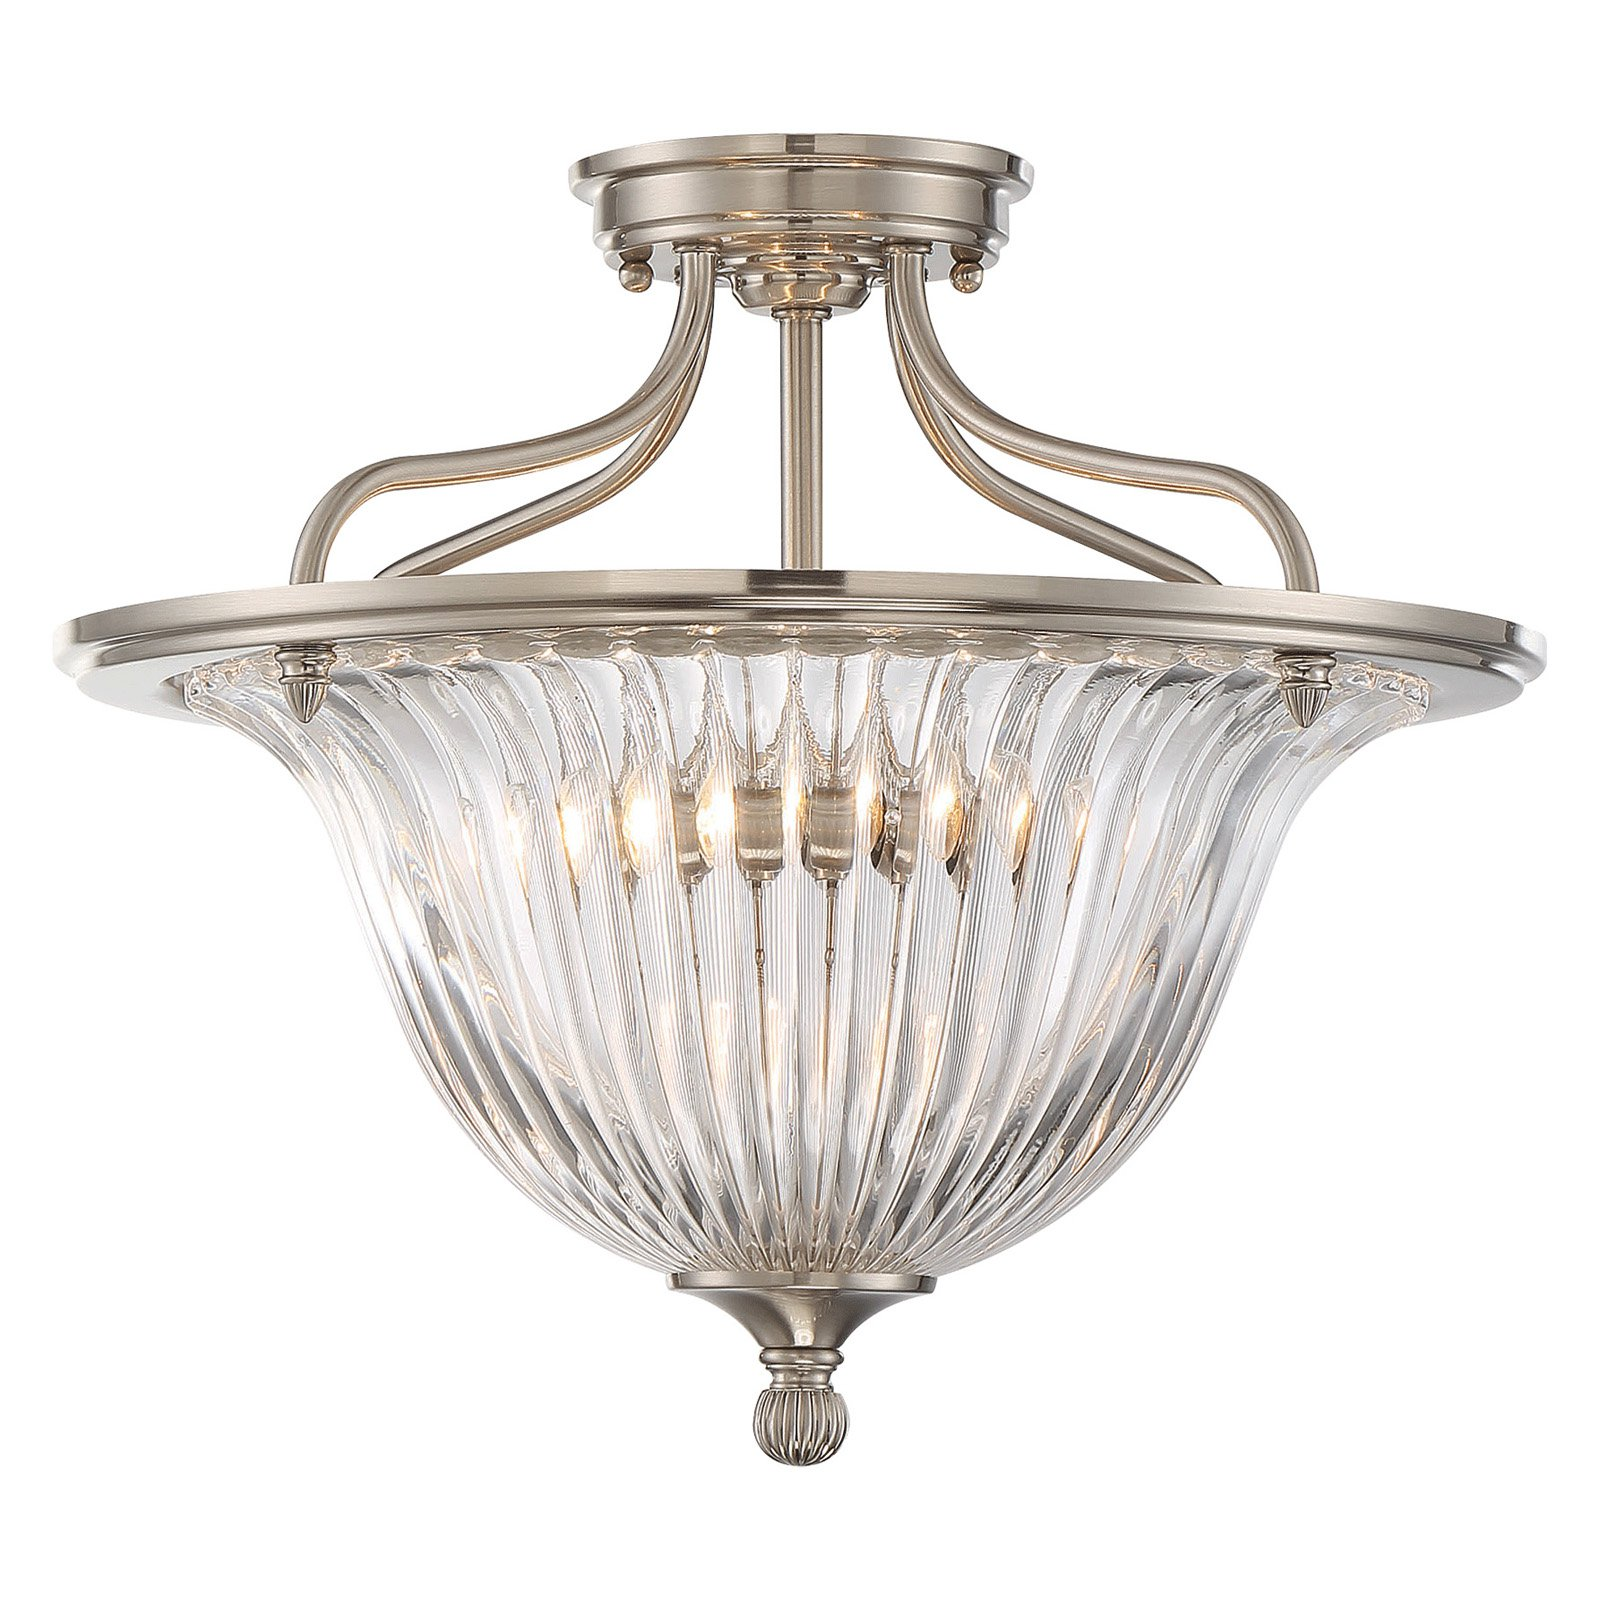 Savoy House Aberdeen 6-151-3 Convertible Semi-Flush Mount Light